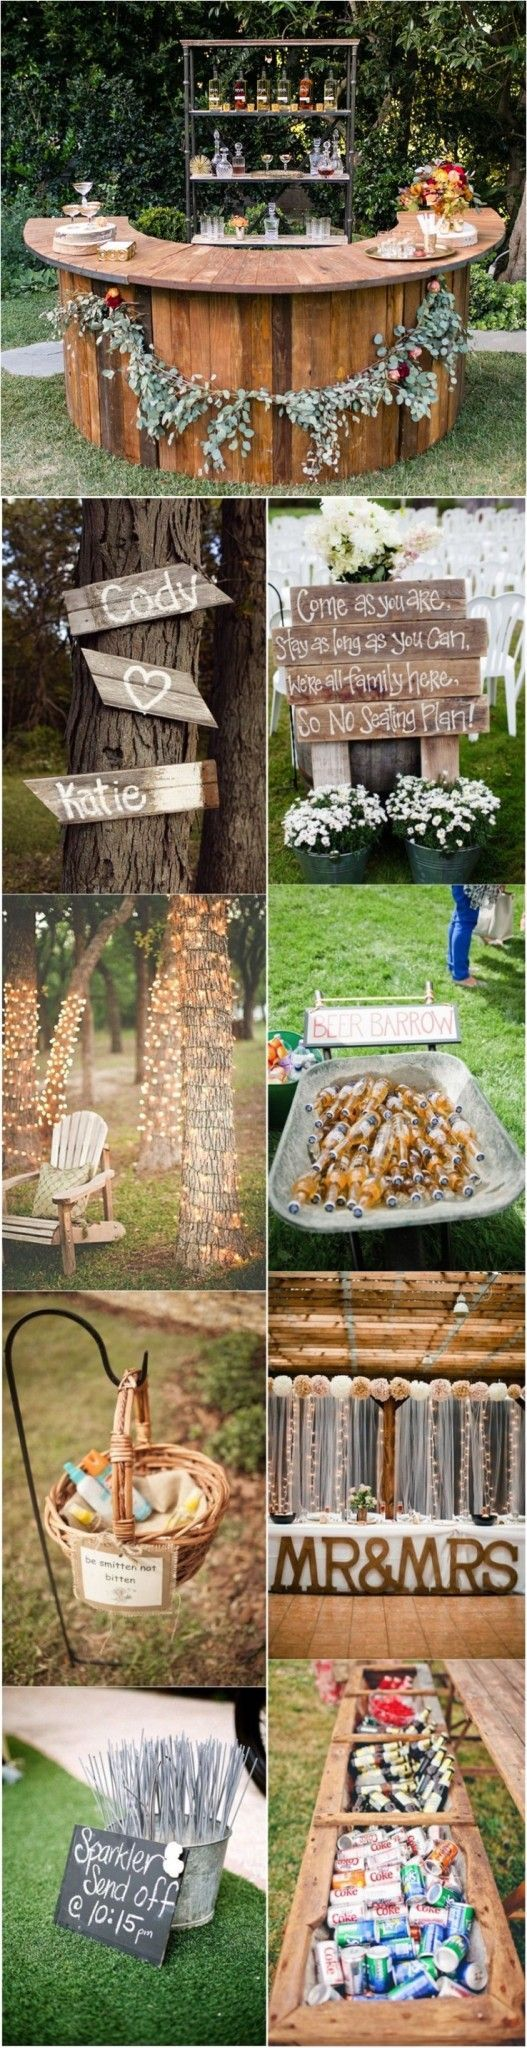 20+ Genius Outdoor Wedding Ideas \ Outdoor wedding reception